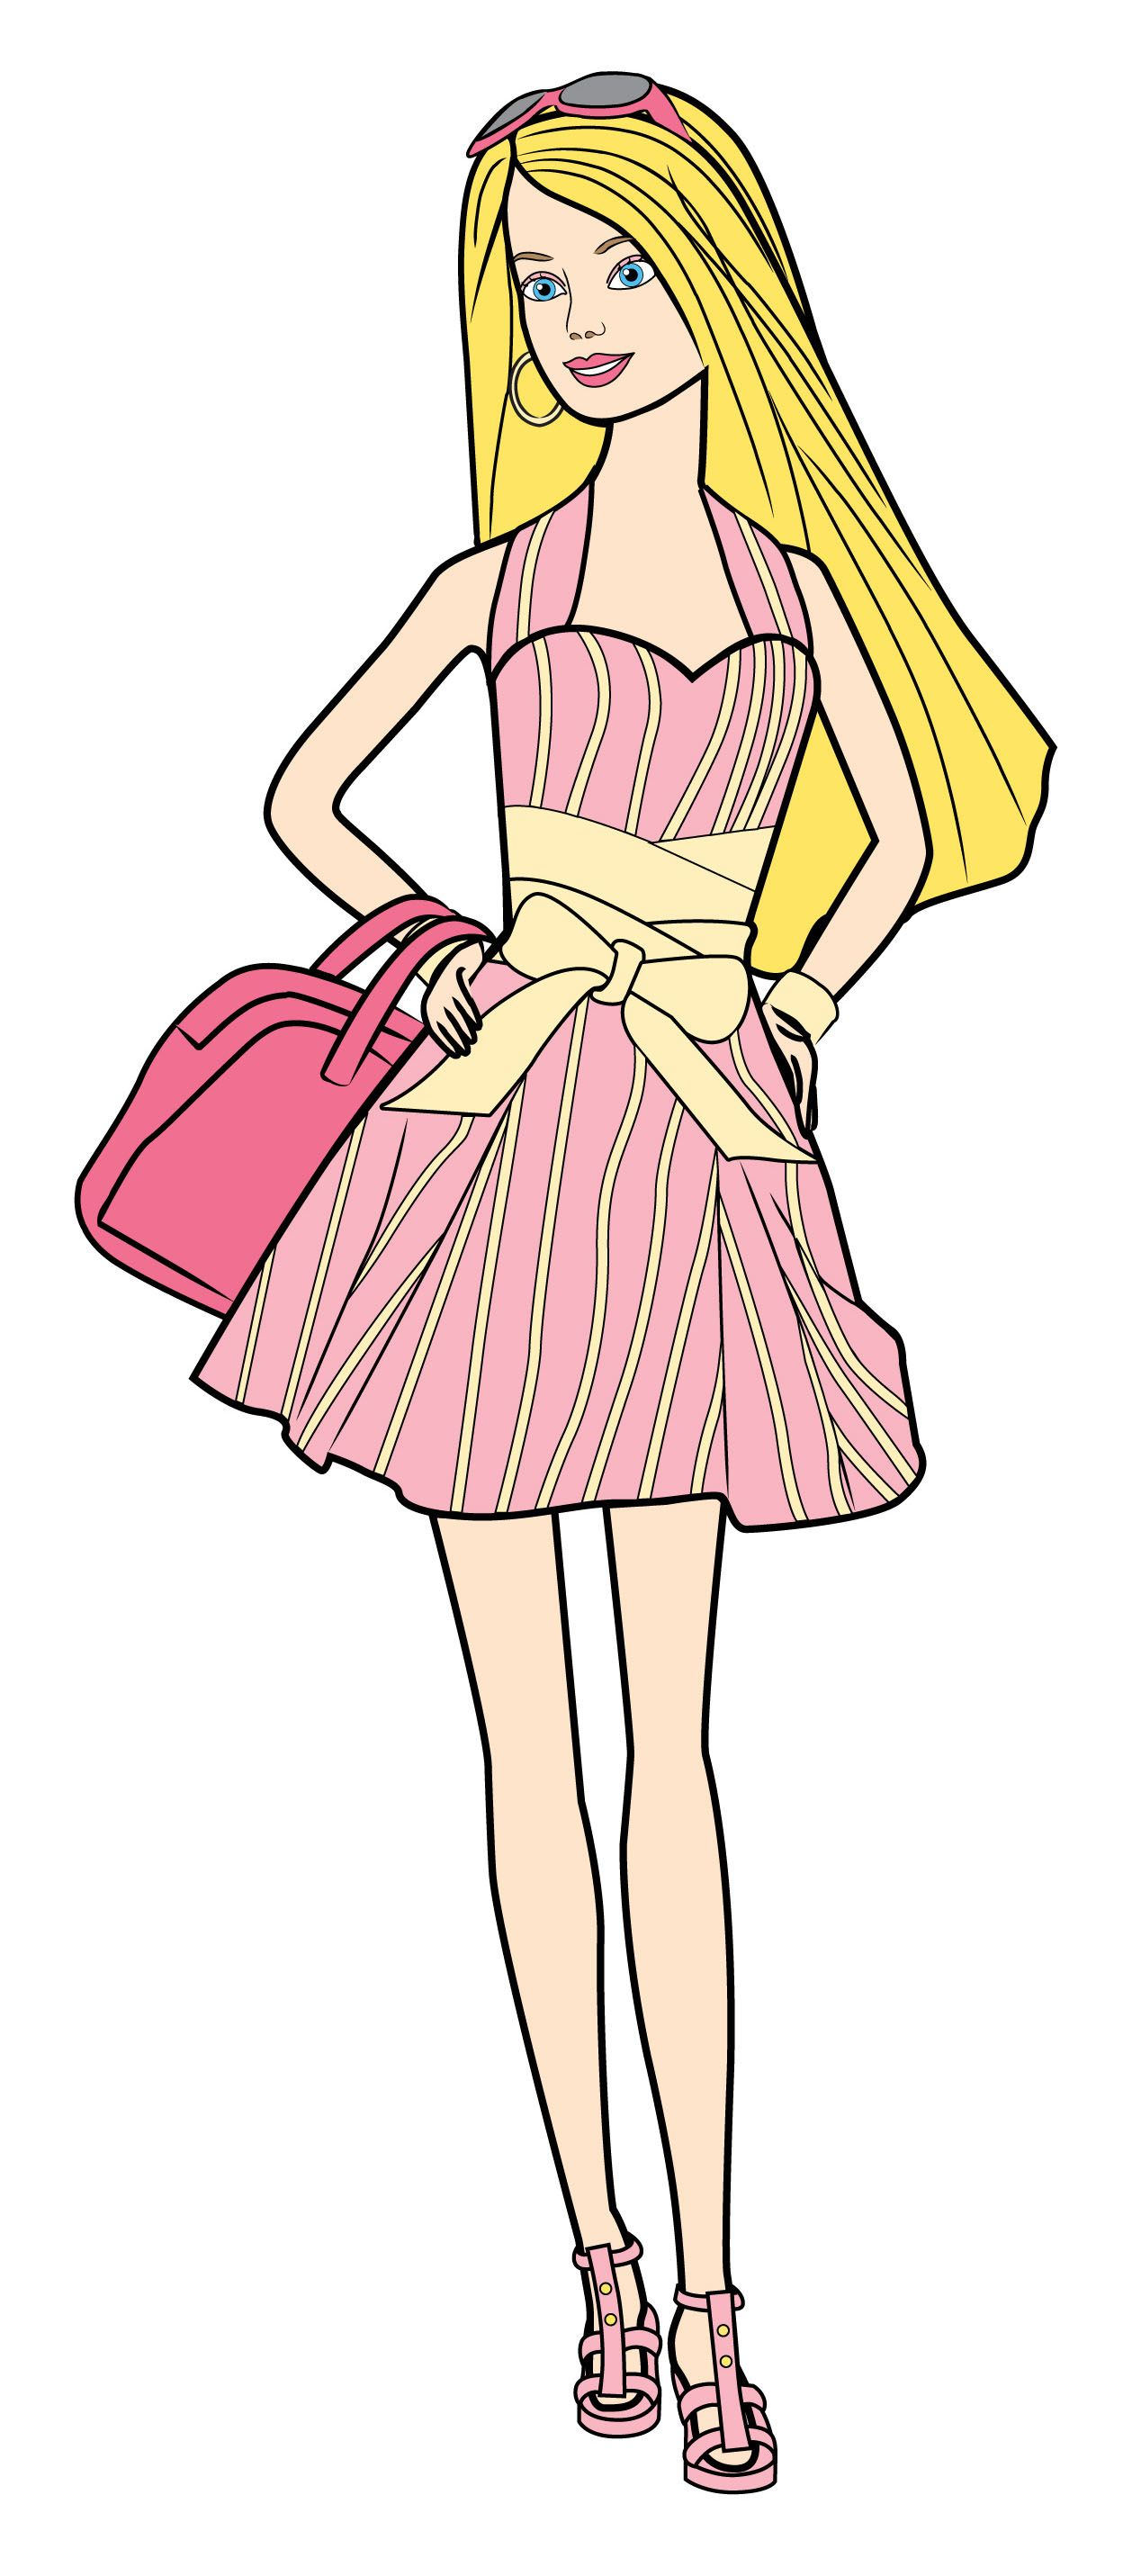 How to draw barbie via wikihow com